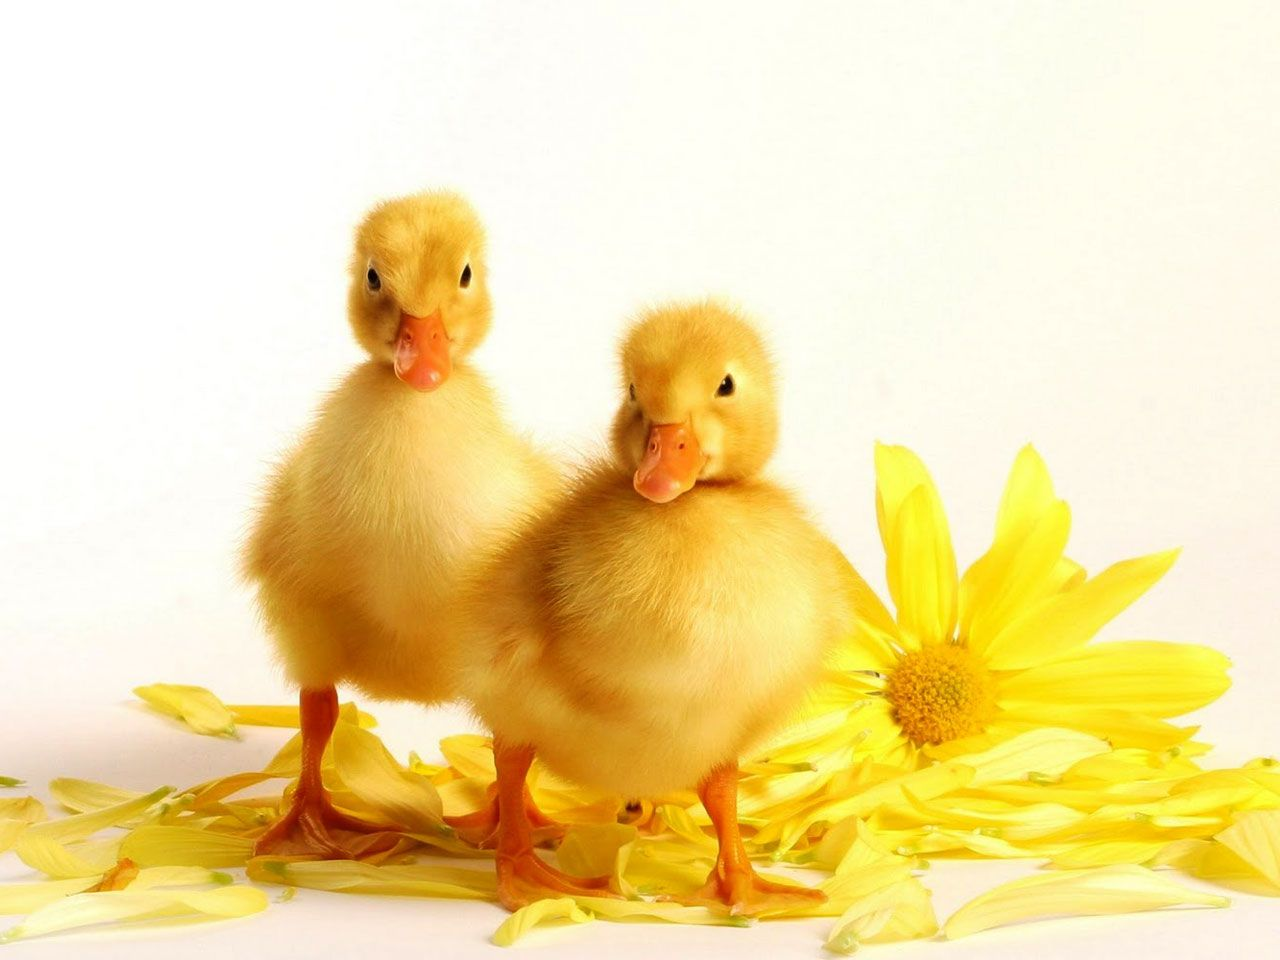 Baby Duck Wallpaper 13937 1280x960 px ~ HDWallSource.com